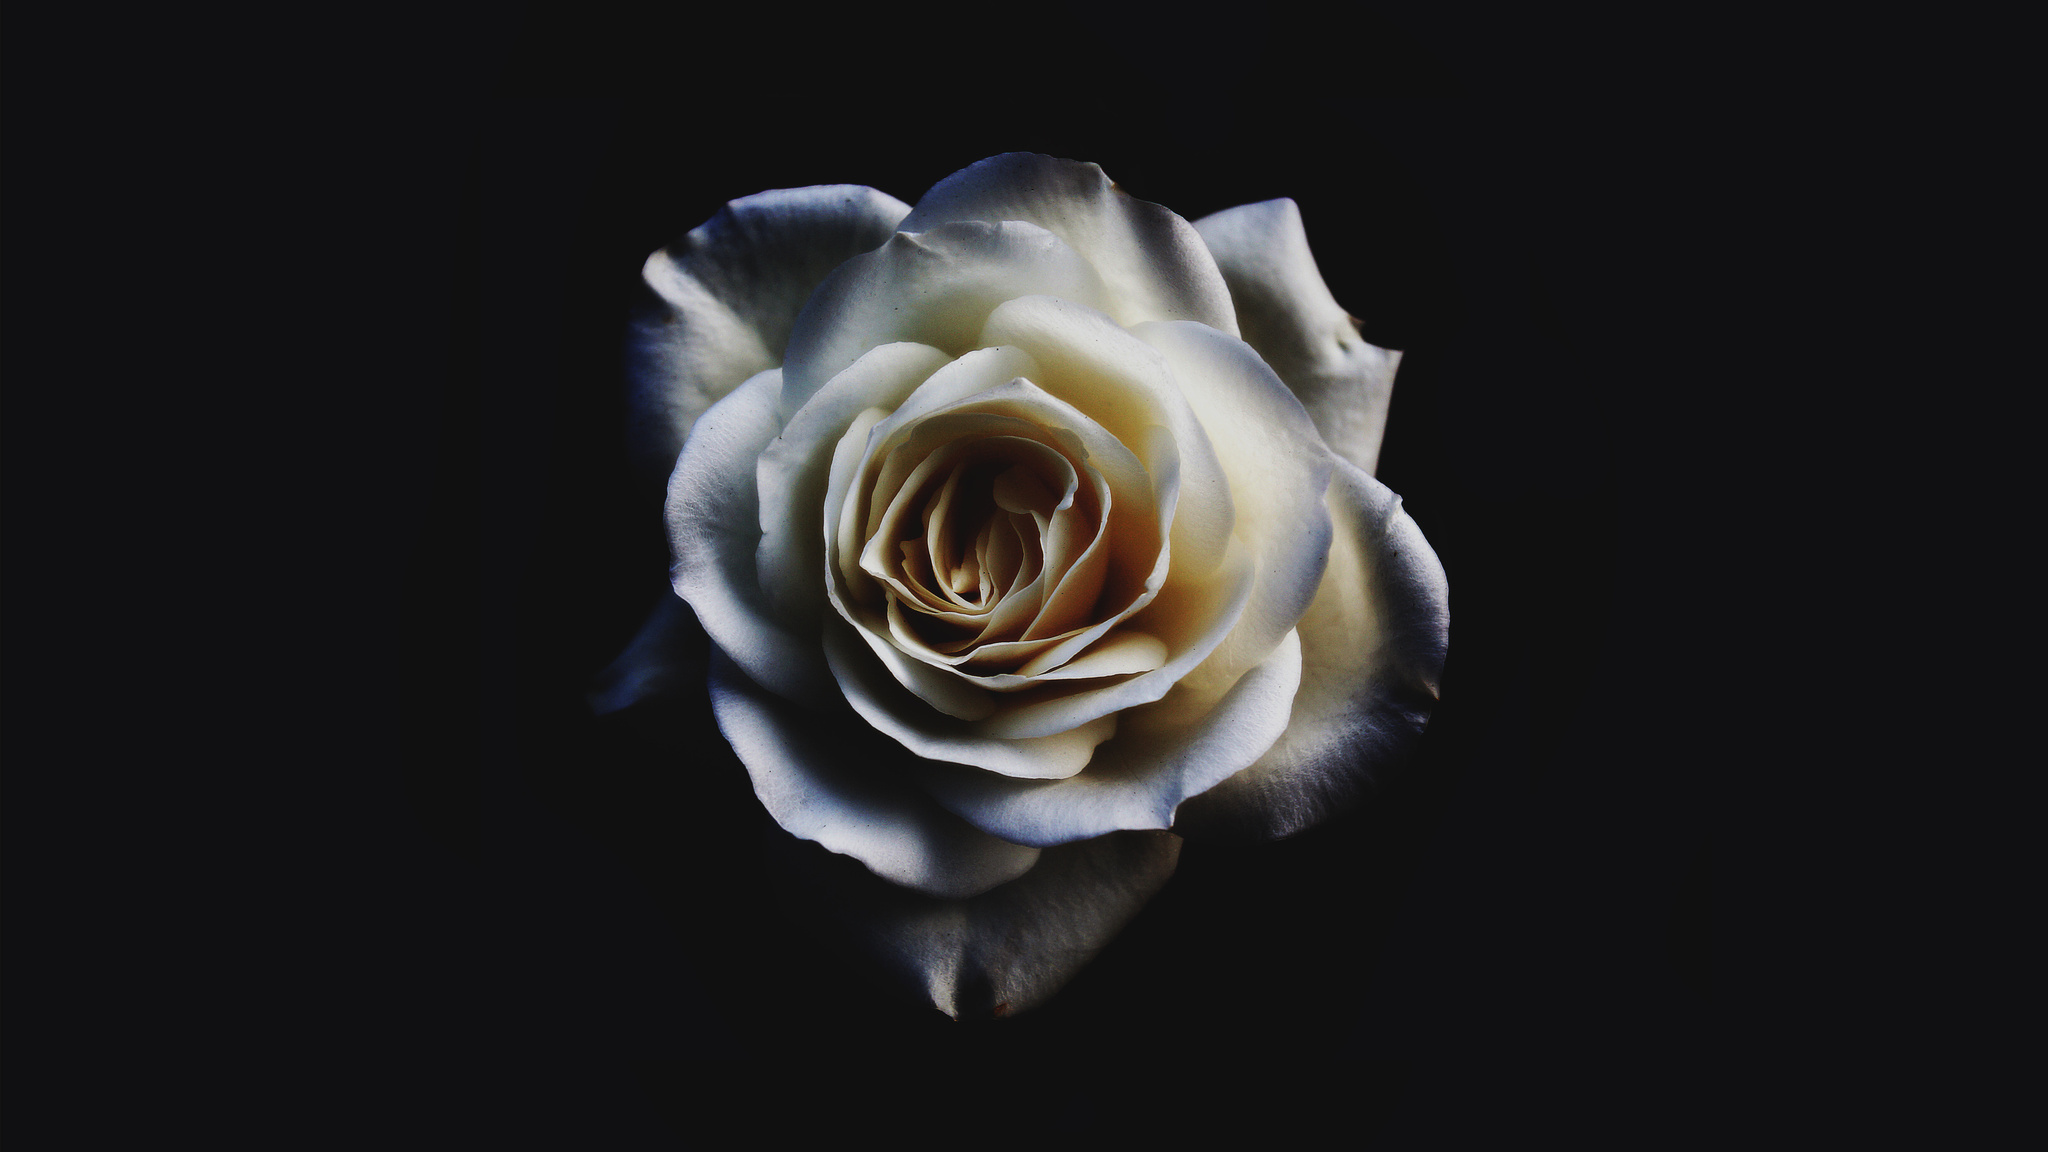 2048x1152 White Rose Resolution HD 4k Wallpapers Images